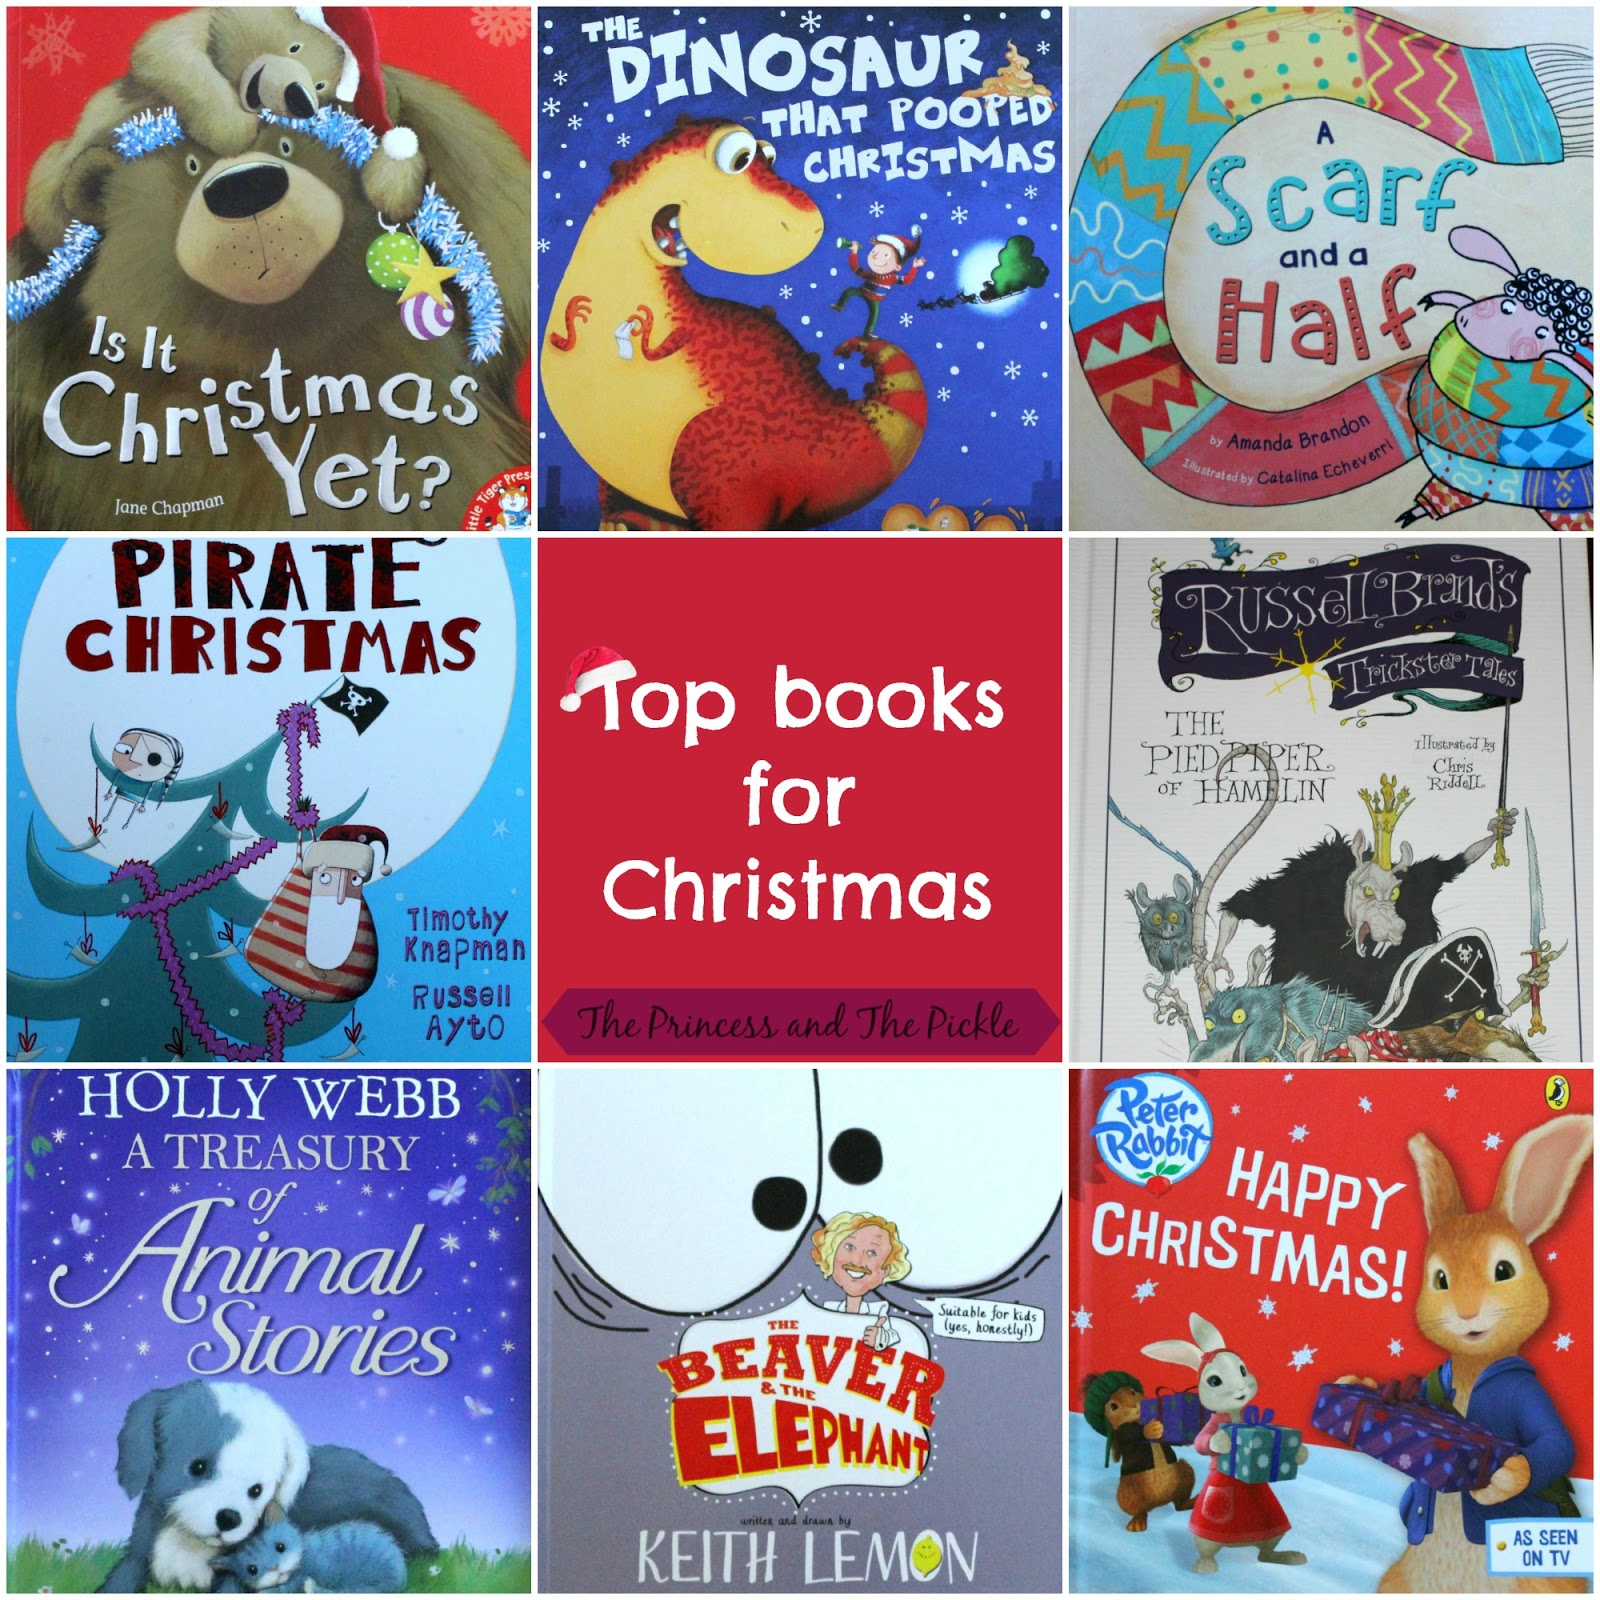 Our Top Books for Christmas!